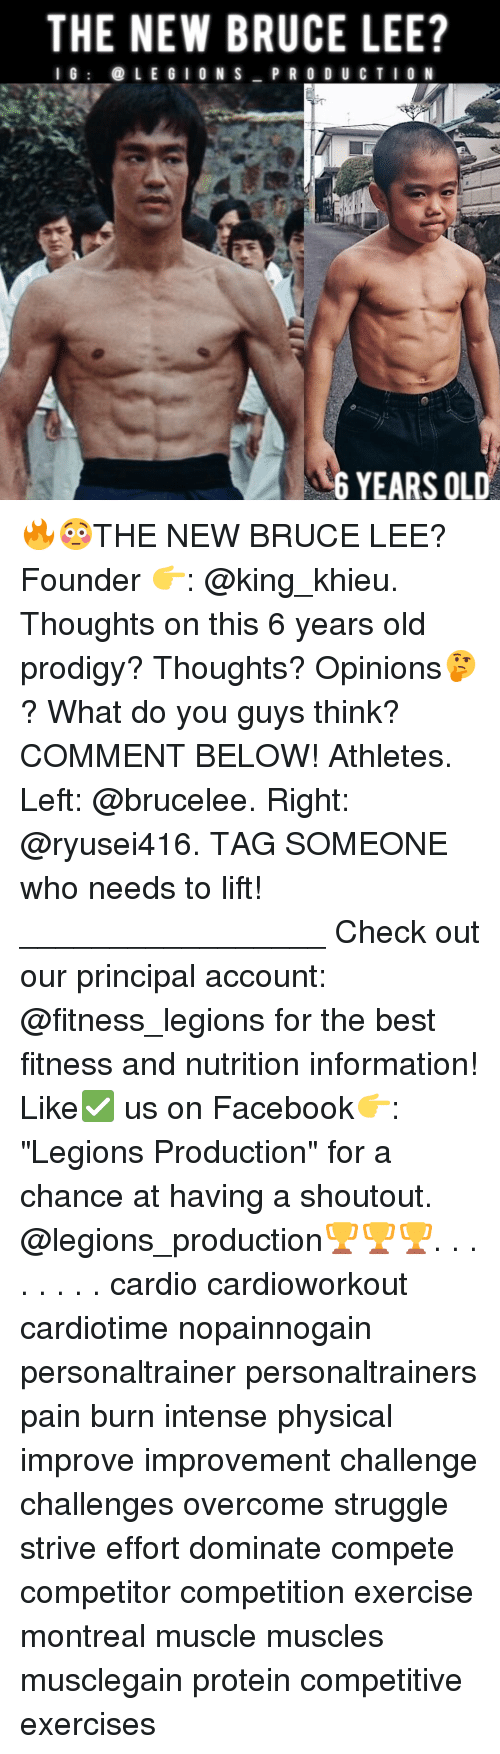 "Memes, Protein, and Struggle: THE NEW BRUCE LEE?  I G  (a LEGION S  PRODUCTION  6 YEARS OLD 🔥😳THE NEW BRUCE LEE? Founder 👉: @king_khieu. Thoughts on this 6 years old prodigy? Thoughts? Opinions🤔? What do you guys think? COMMENT BELOW! Athletes. Left: @brucelee. Right: @ryusei416. TAG SOMEONE who needs to lift! _________________ Check out our principal account: @fitness_legions for the best fitness and nutrition information! Like✅ us on Facebook👉: ""Legions Production"" for a chance at having a shoutout. @legions_production🏆🏆🏆. . . . . . . . cardio cardioworkout cardiotime nopainnogain personaltrainer personaltrainers pain burn intense physical improve improvement challenge challenges overcome struggle strive effort dominate compete competitor competition exercise montreal muscle muscles musclegain protein competitive exercises"